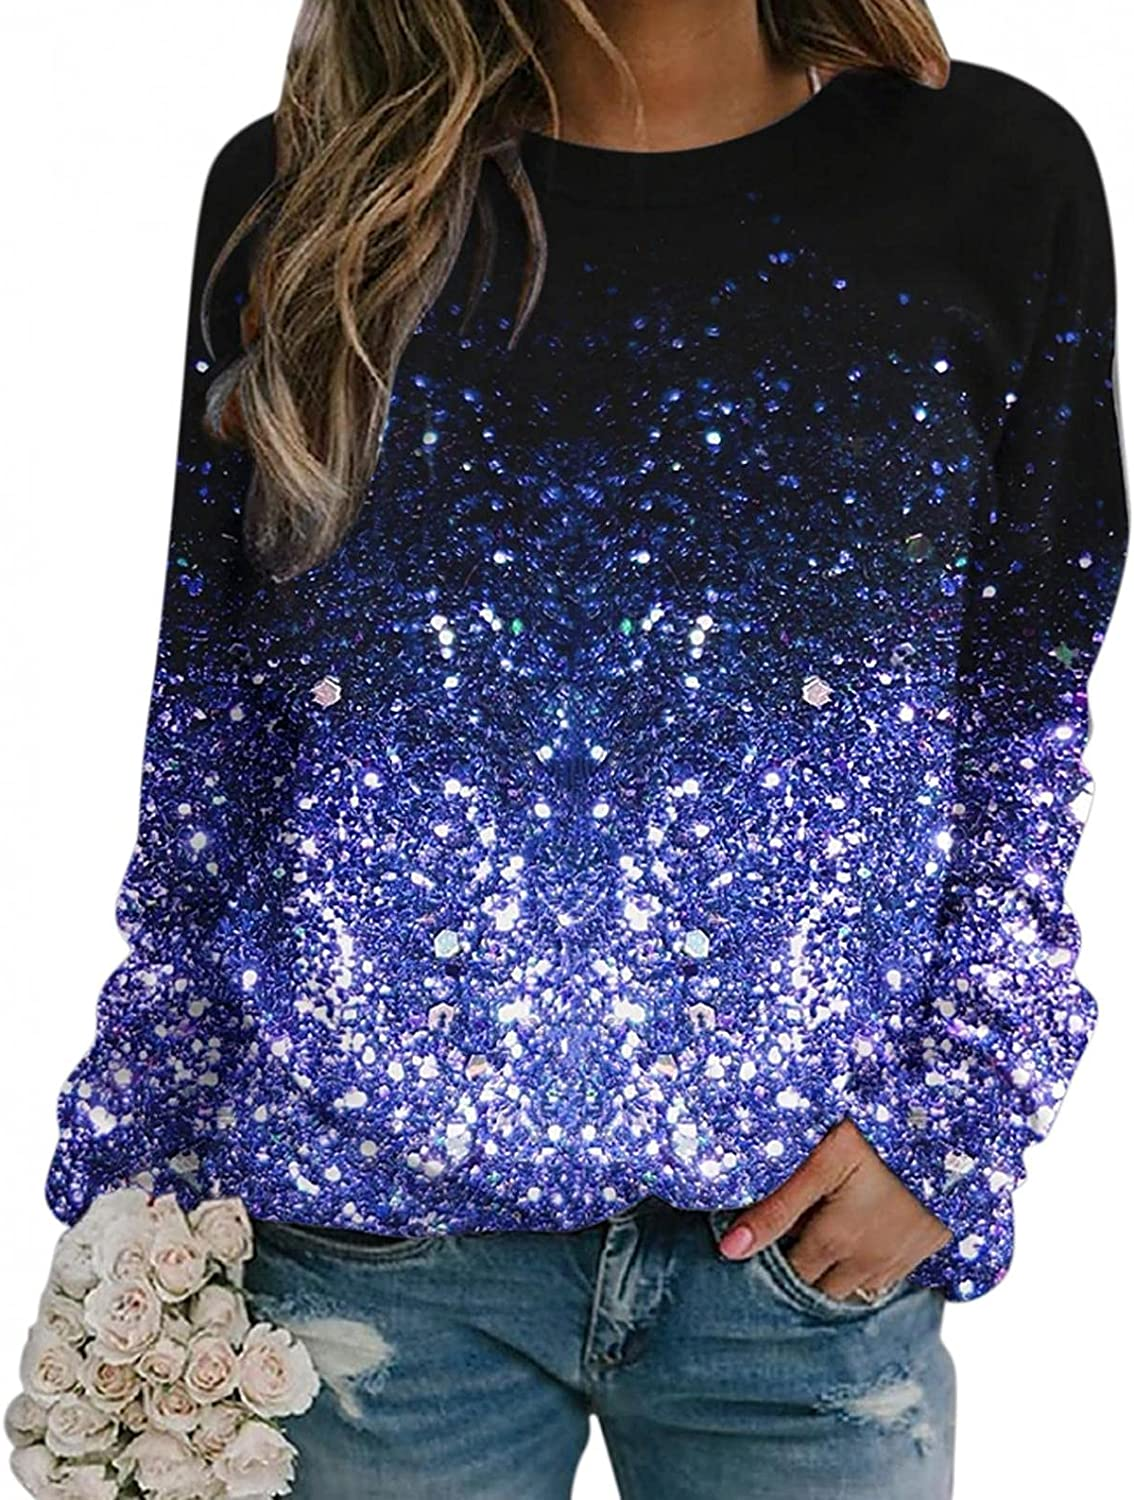 Aukbays Fall Clothes Columbus Mall for Women Sleeve Women's Casual Graphi Year-end annual account Long